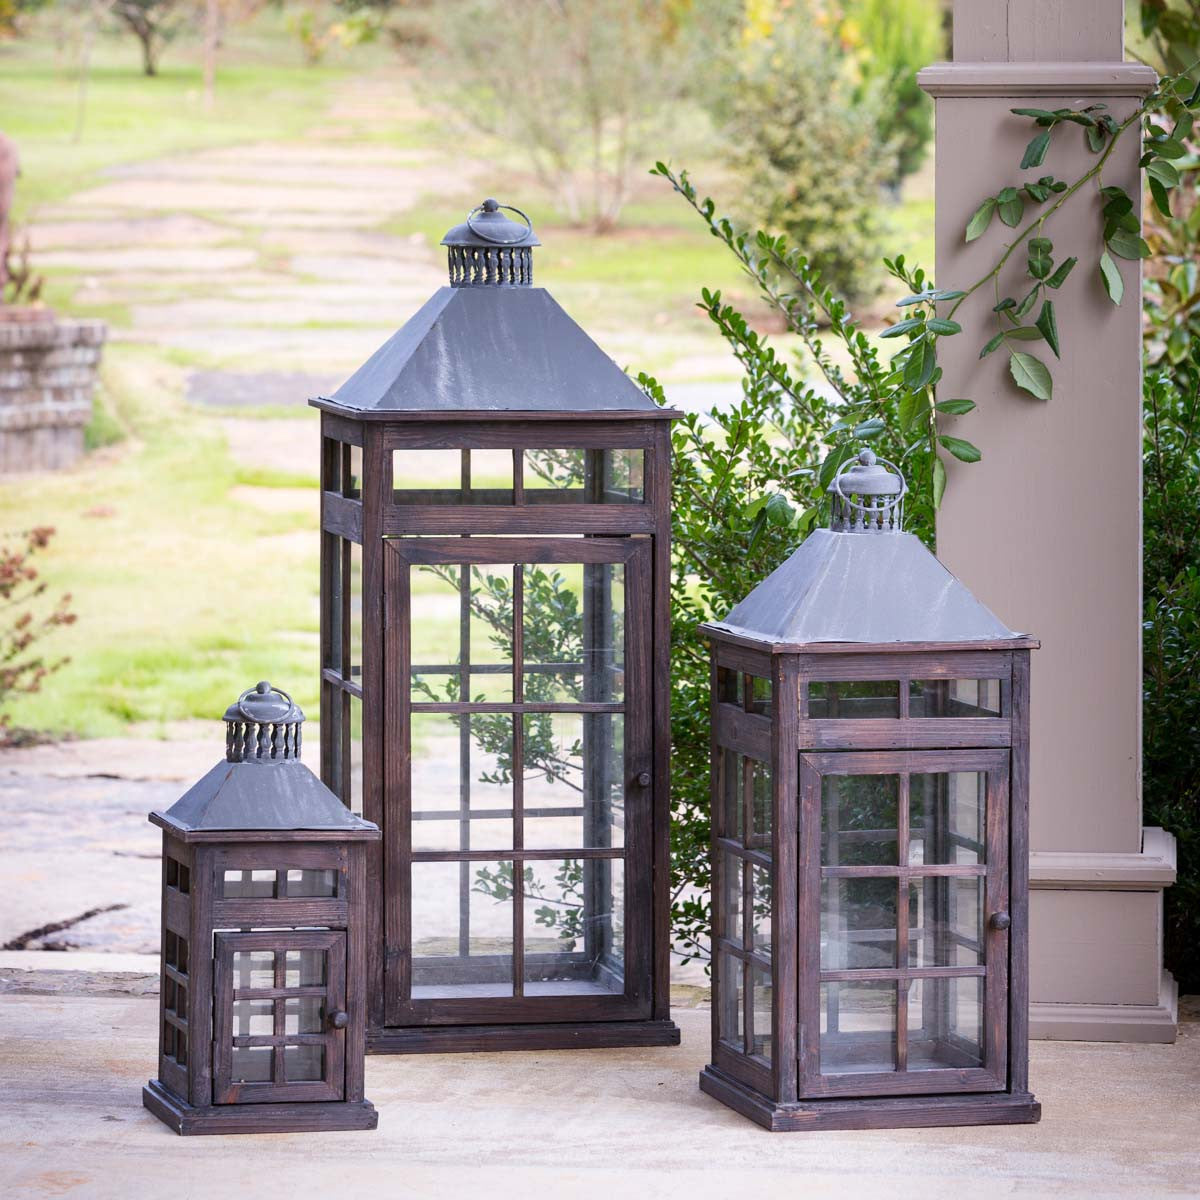 Lovecup Transom Window Lanterns, Set of 3 L259